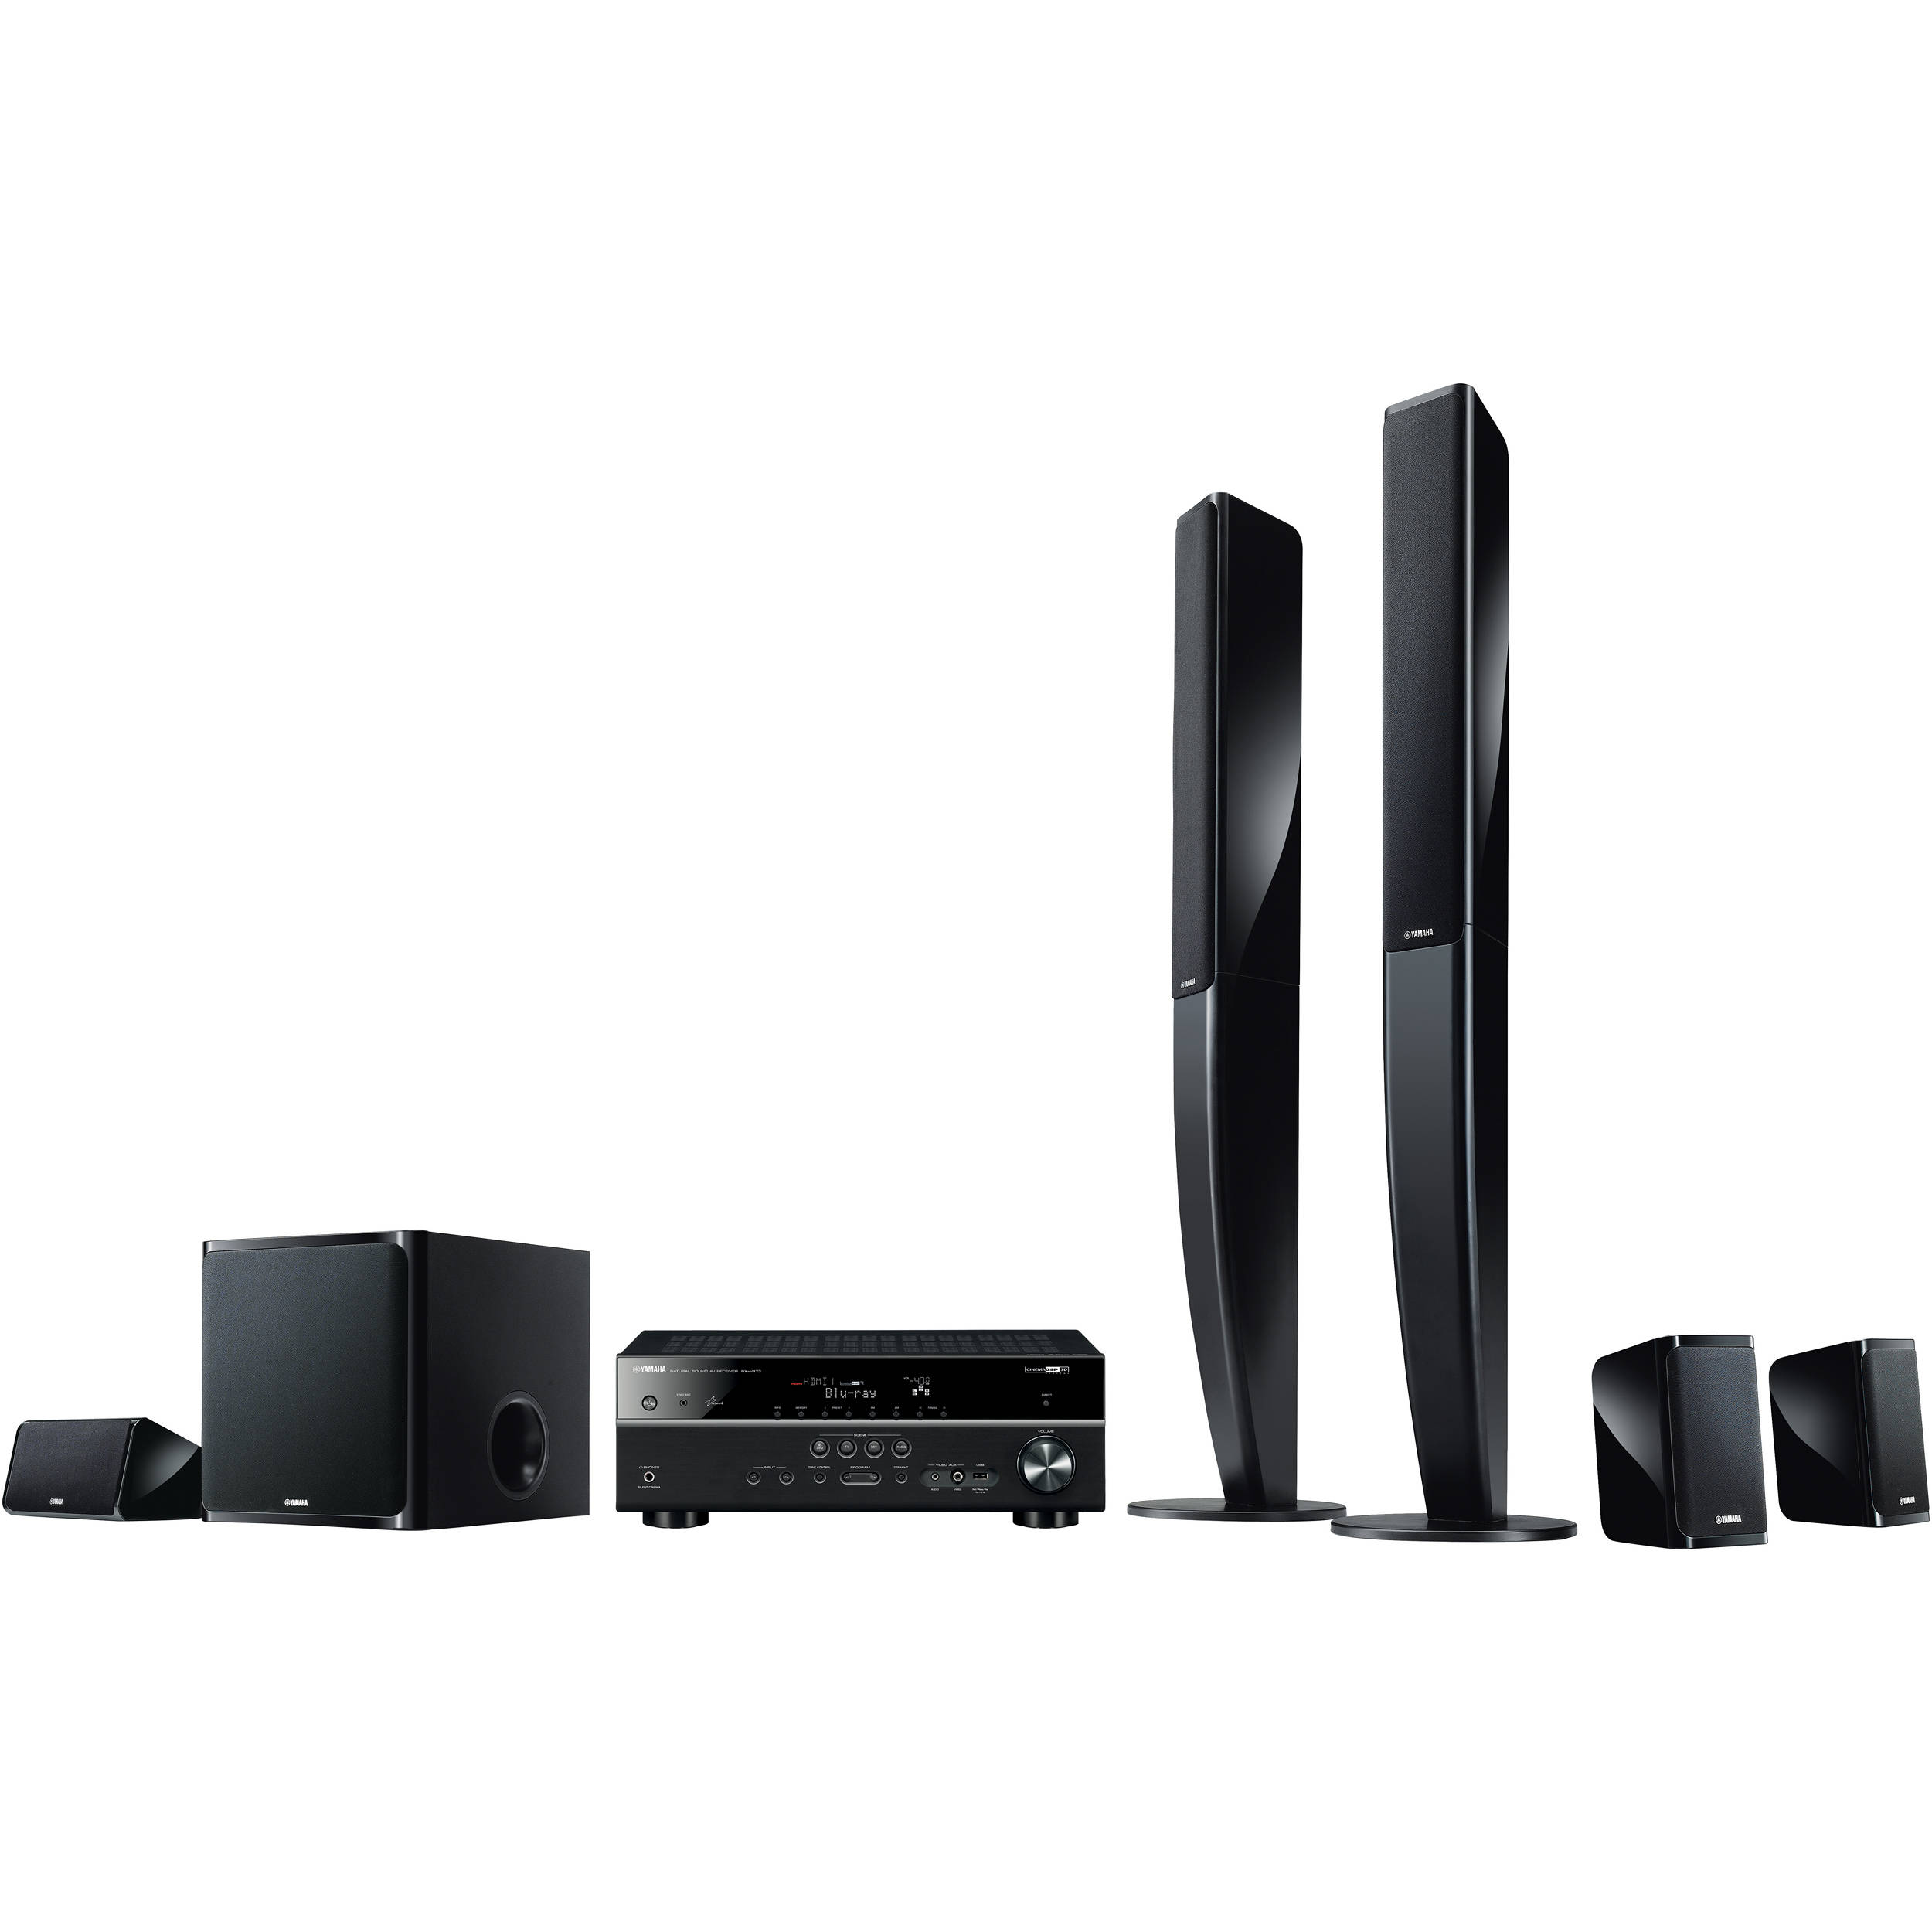 Yamaha YHT-699UBL 5.1-Channel Network AV Home Theater YHT-699UBL